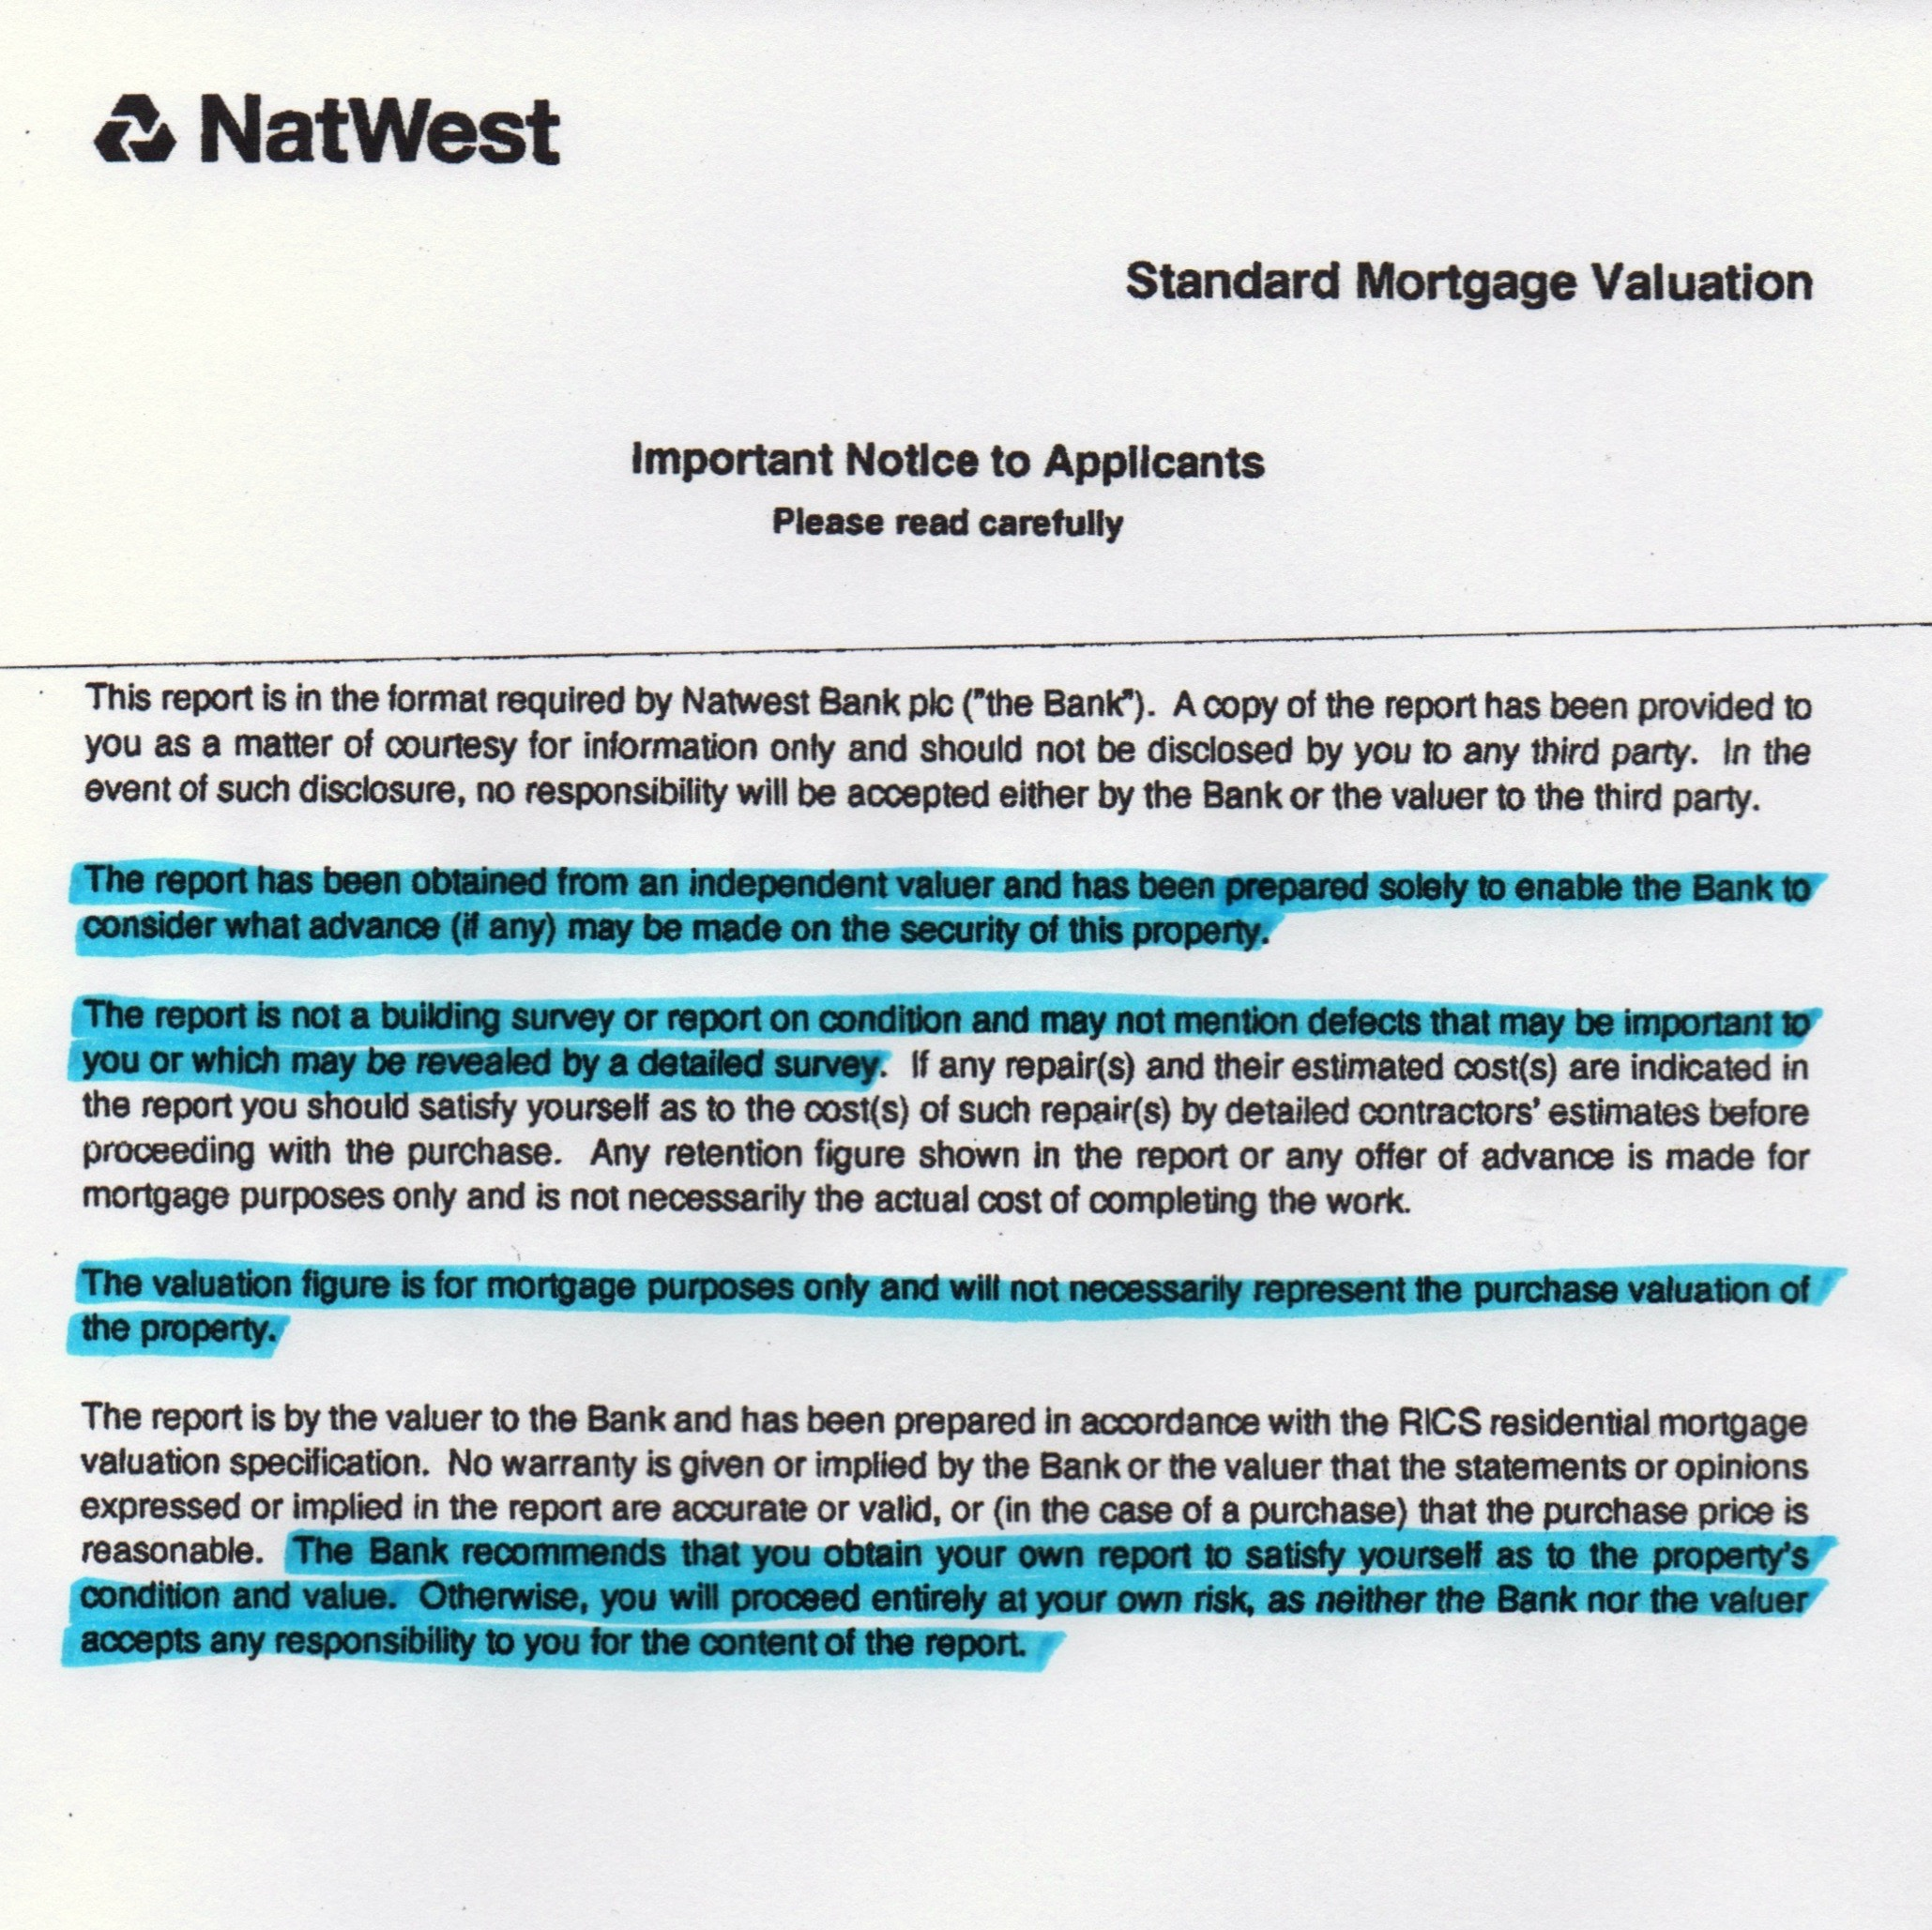 Mortgage valuation report explained